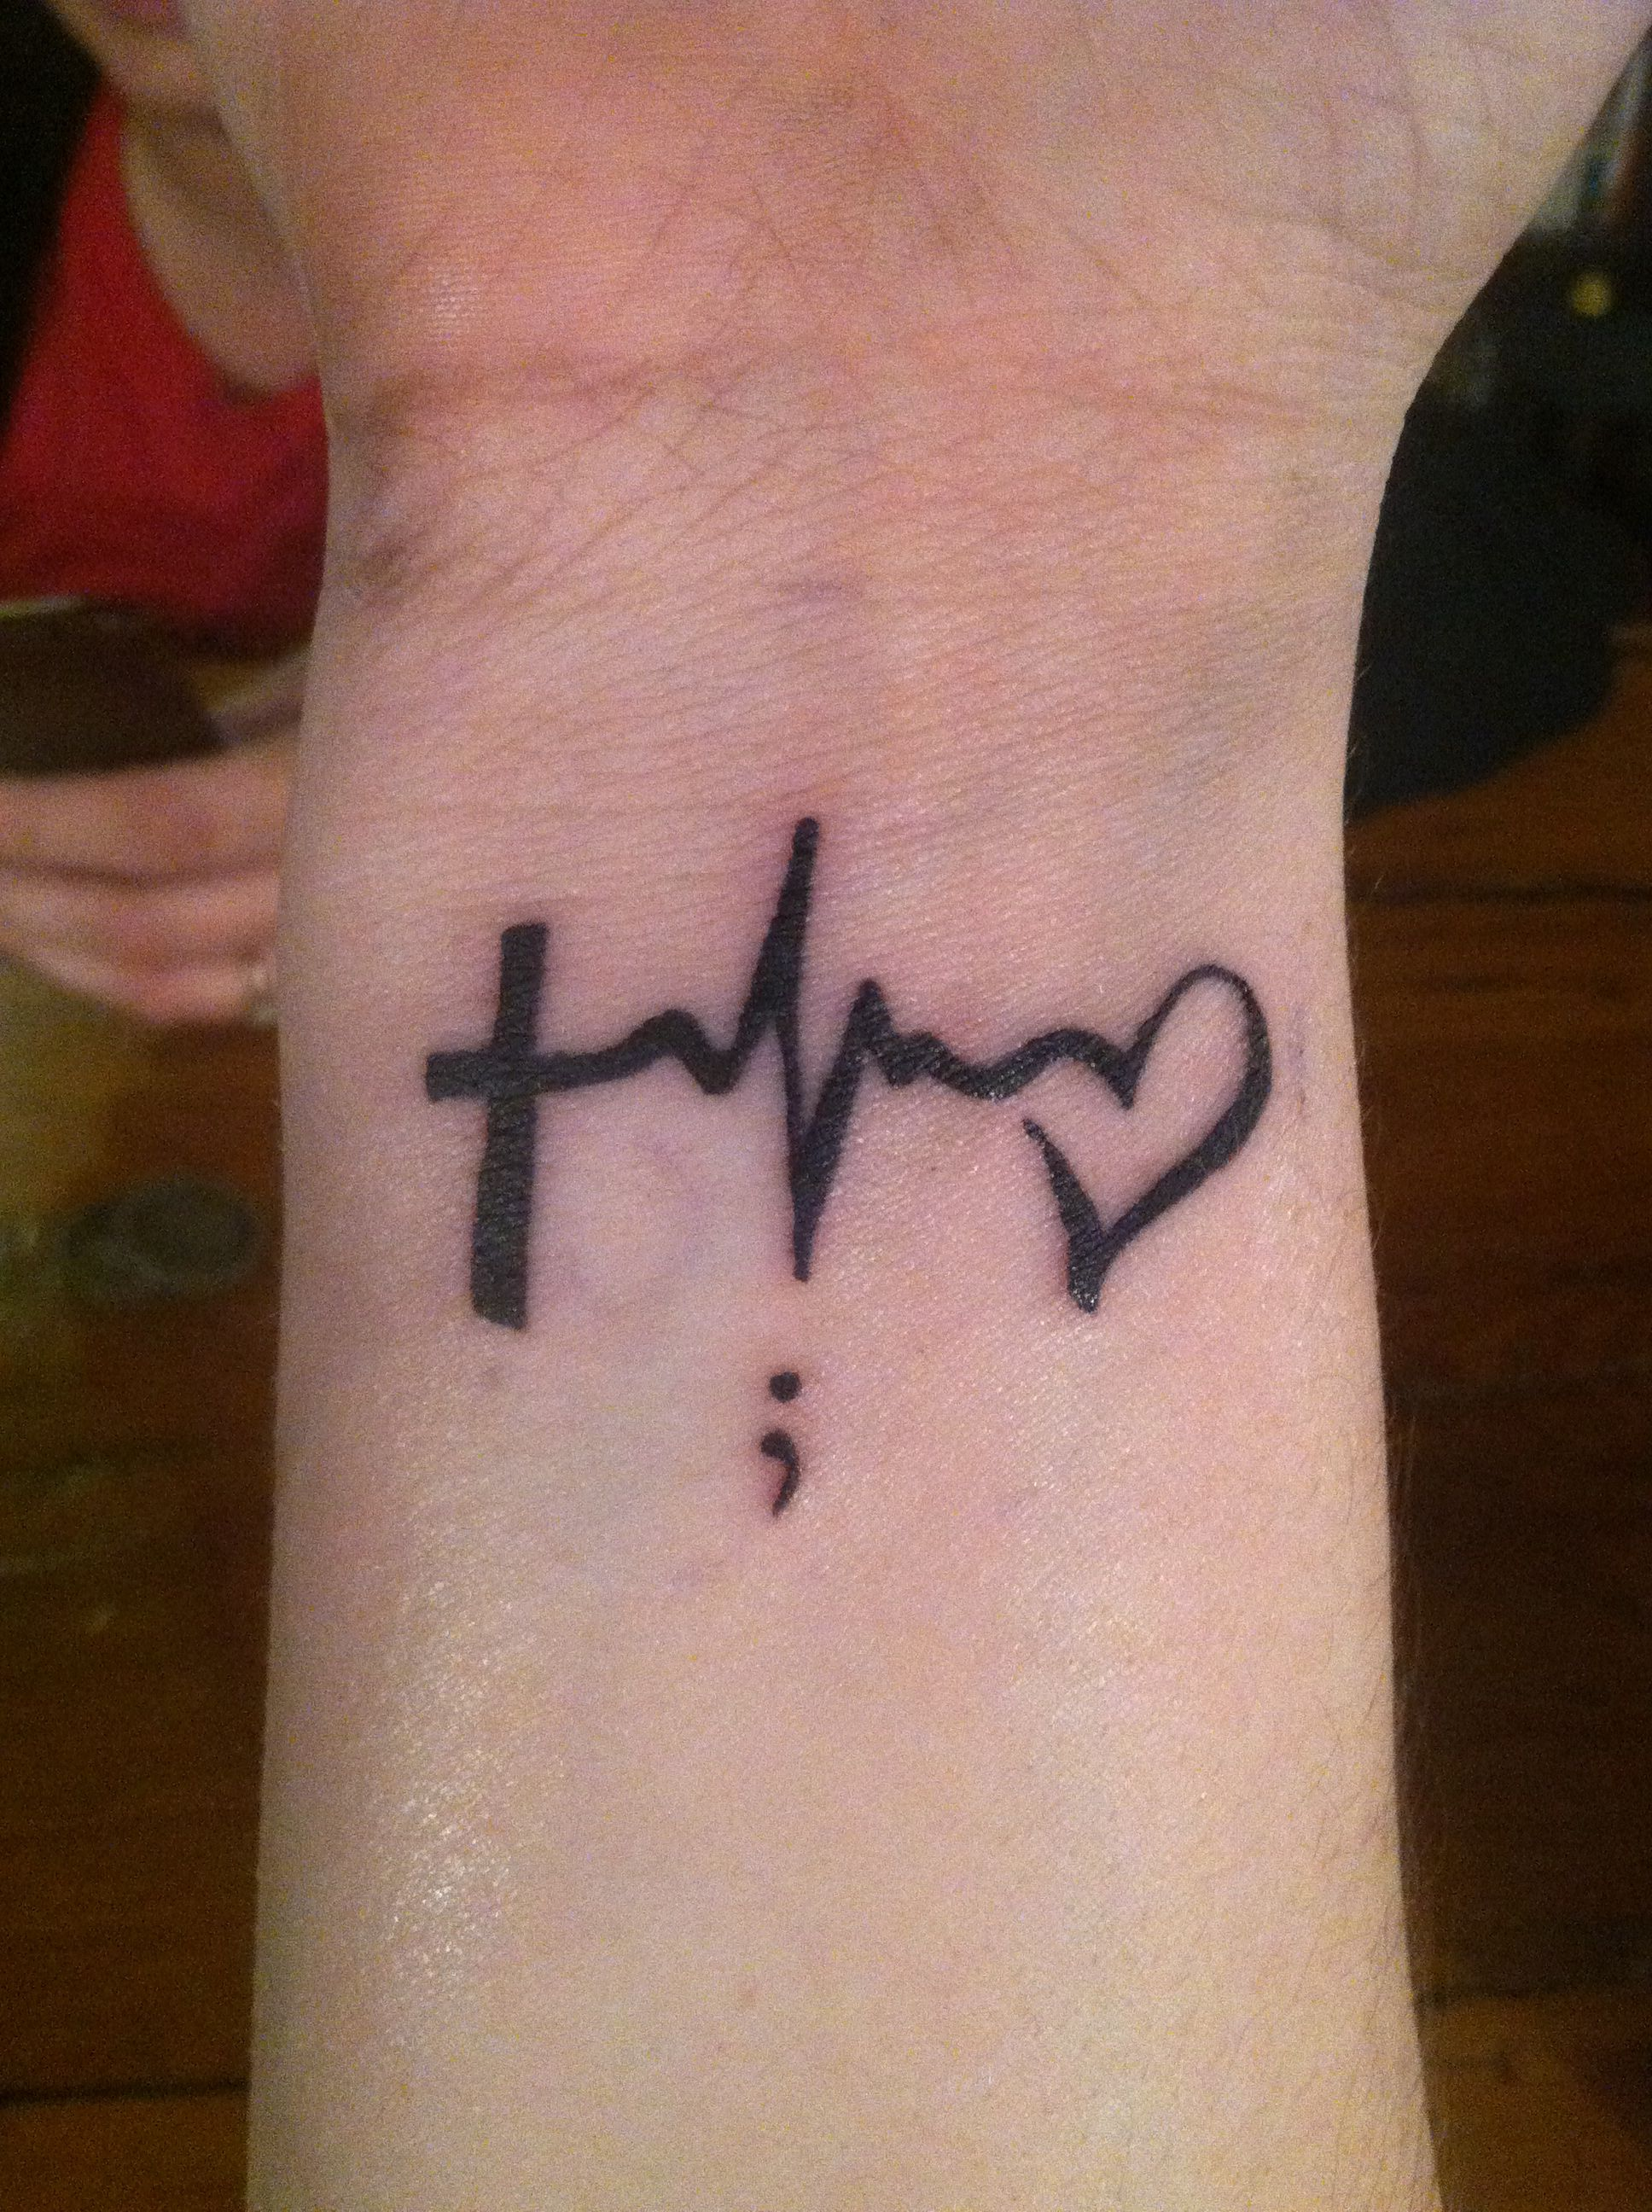 Faith, Hope, and Love with a semi colon meaning you could